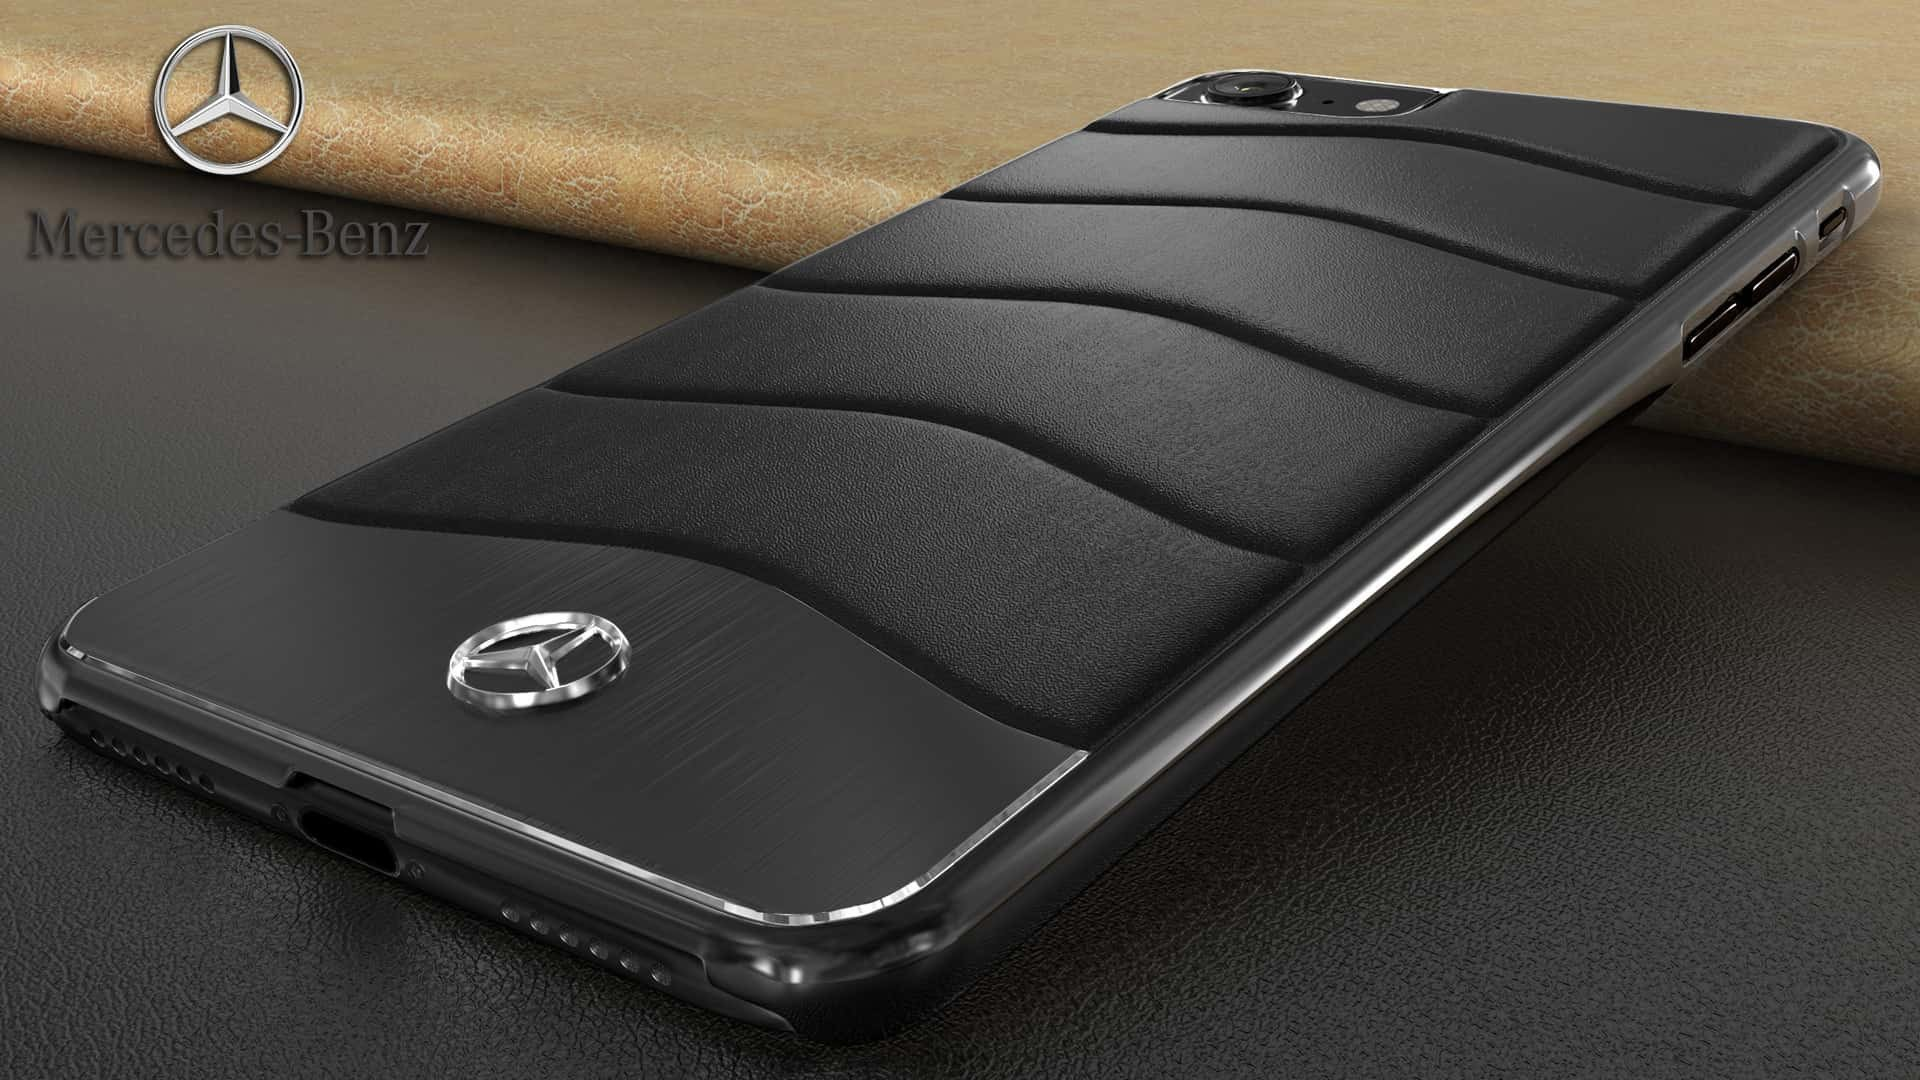 Mercedes Benz Iphone S Plus Case